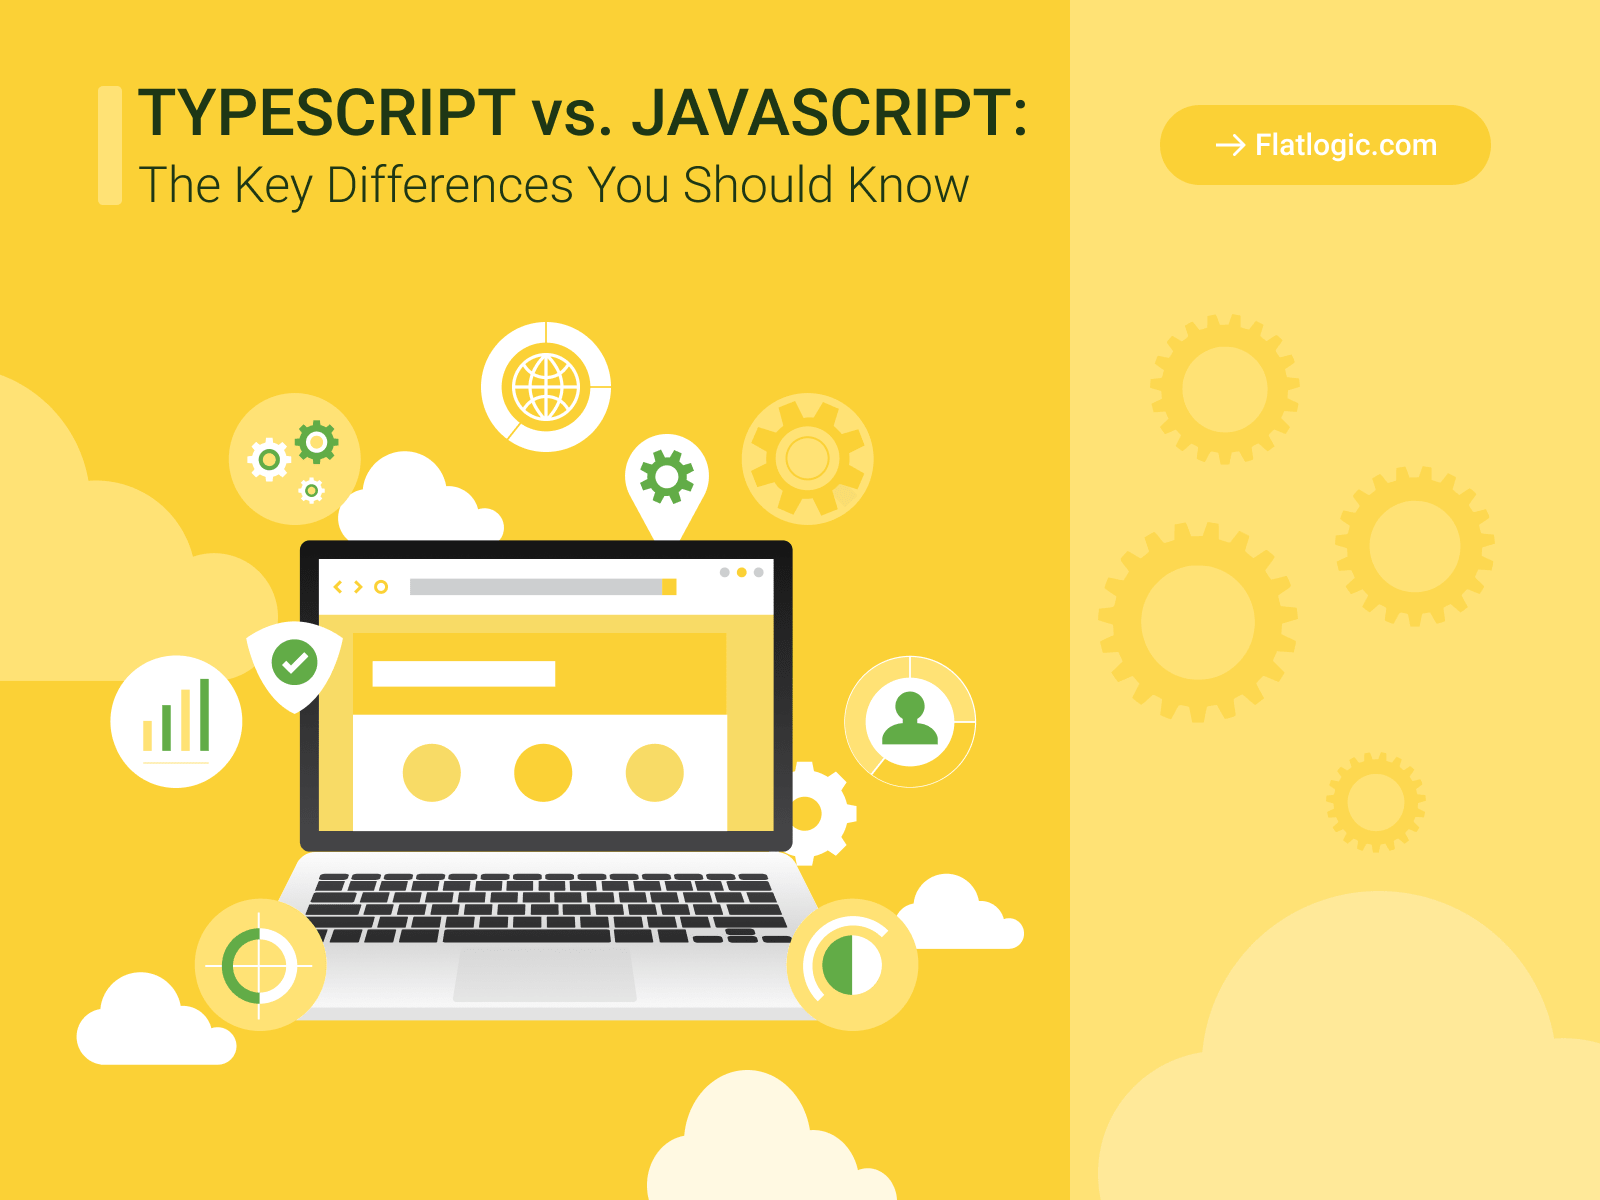 Typescript vs. Javascript: The Key Differences You Should Know in 2020